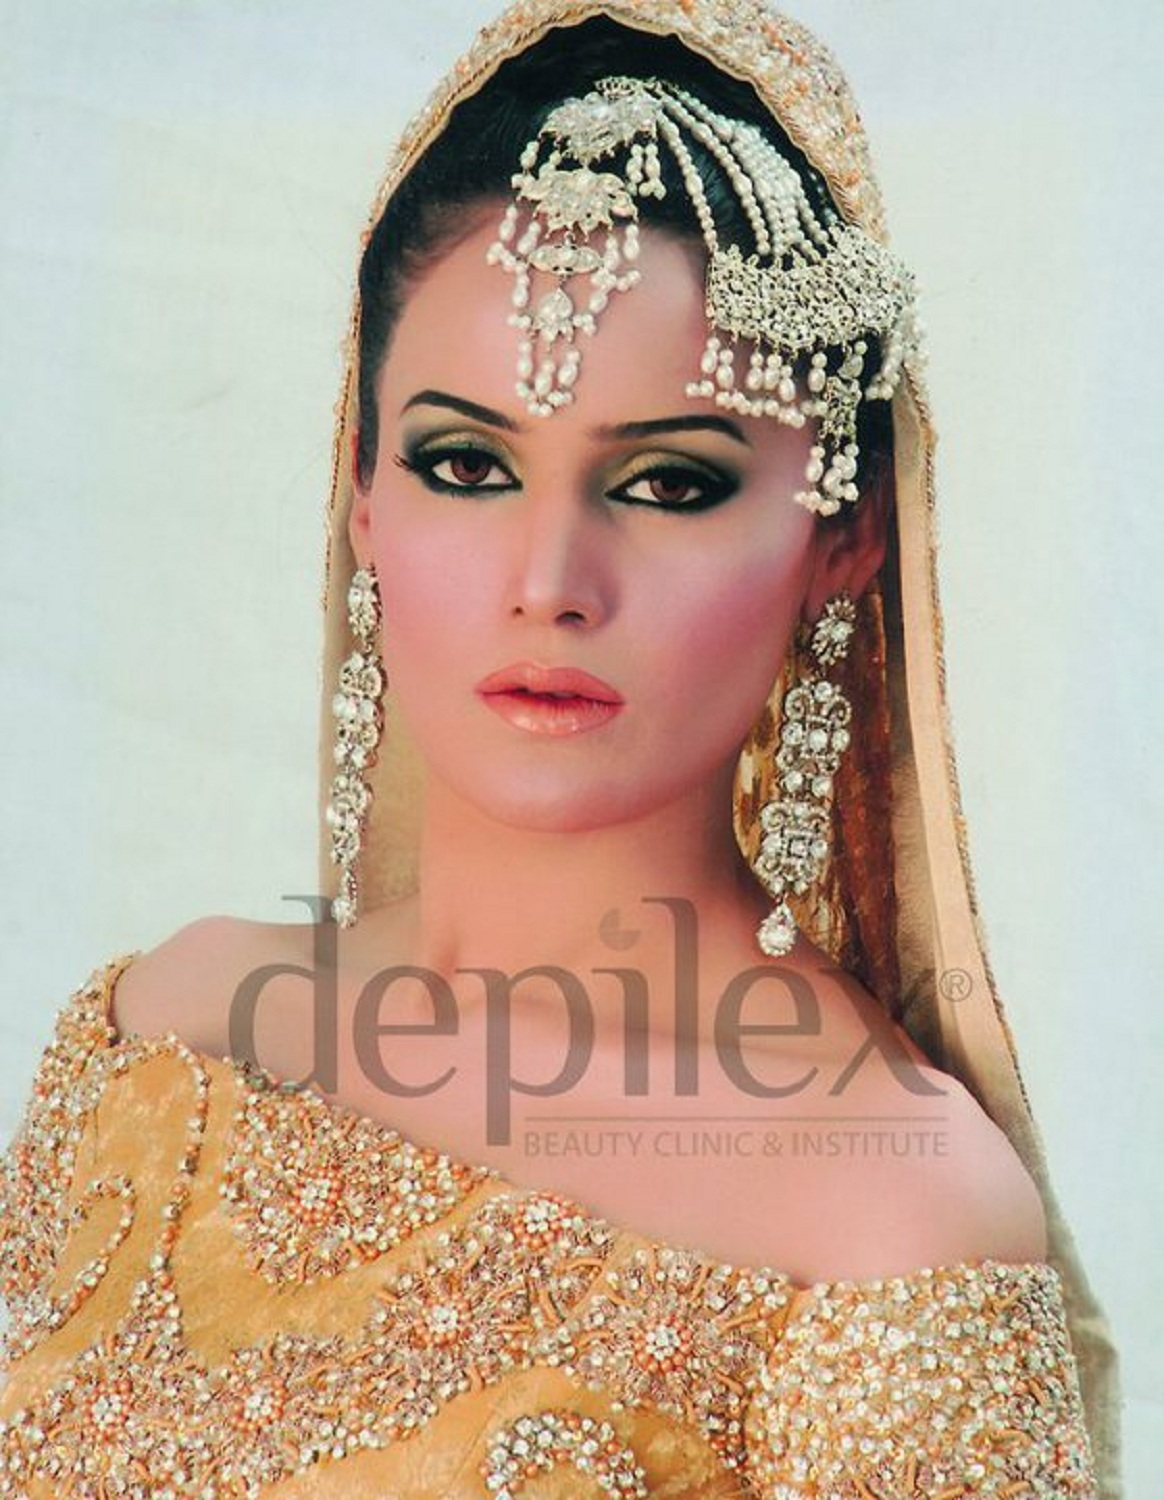 Depilex Bridal Makeup : brides made by depilex beauty salon style.pk 006 Style.Pk